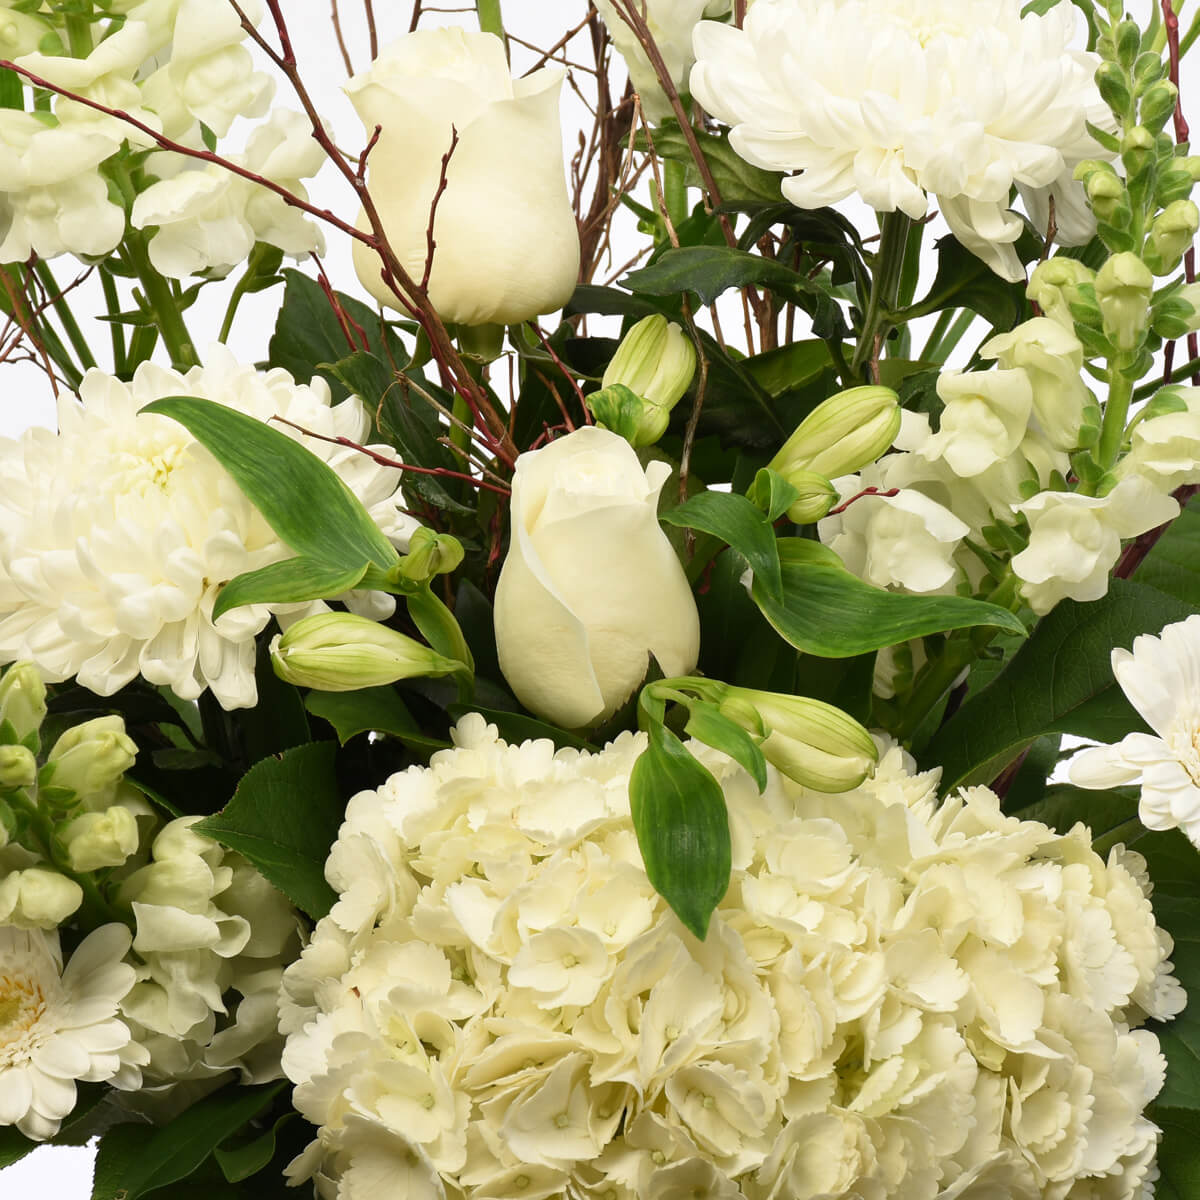 Clear glass vase with flowers like hydrangea, roses, snapdragons for sympathy